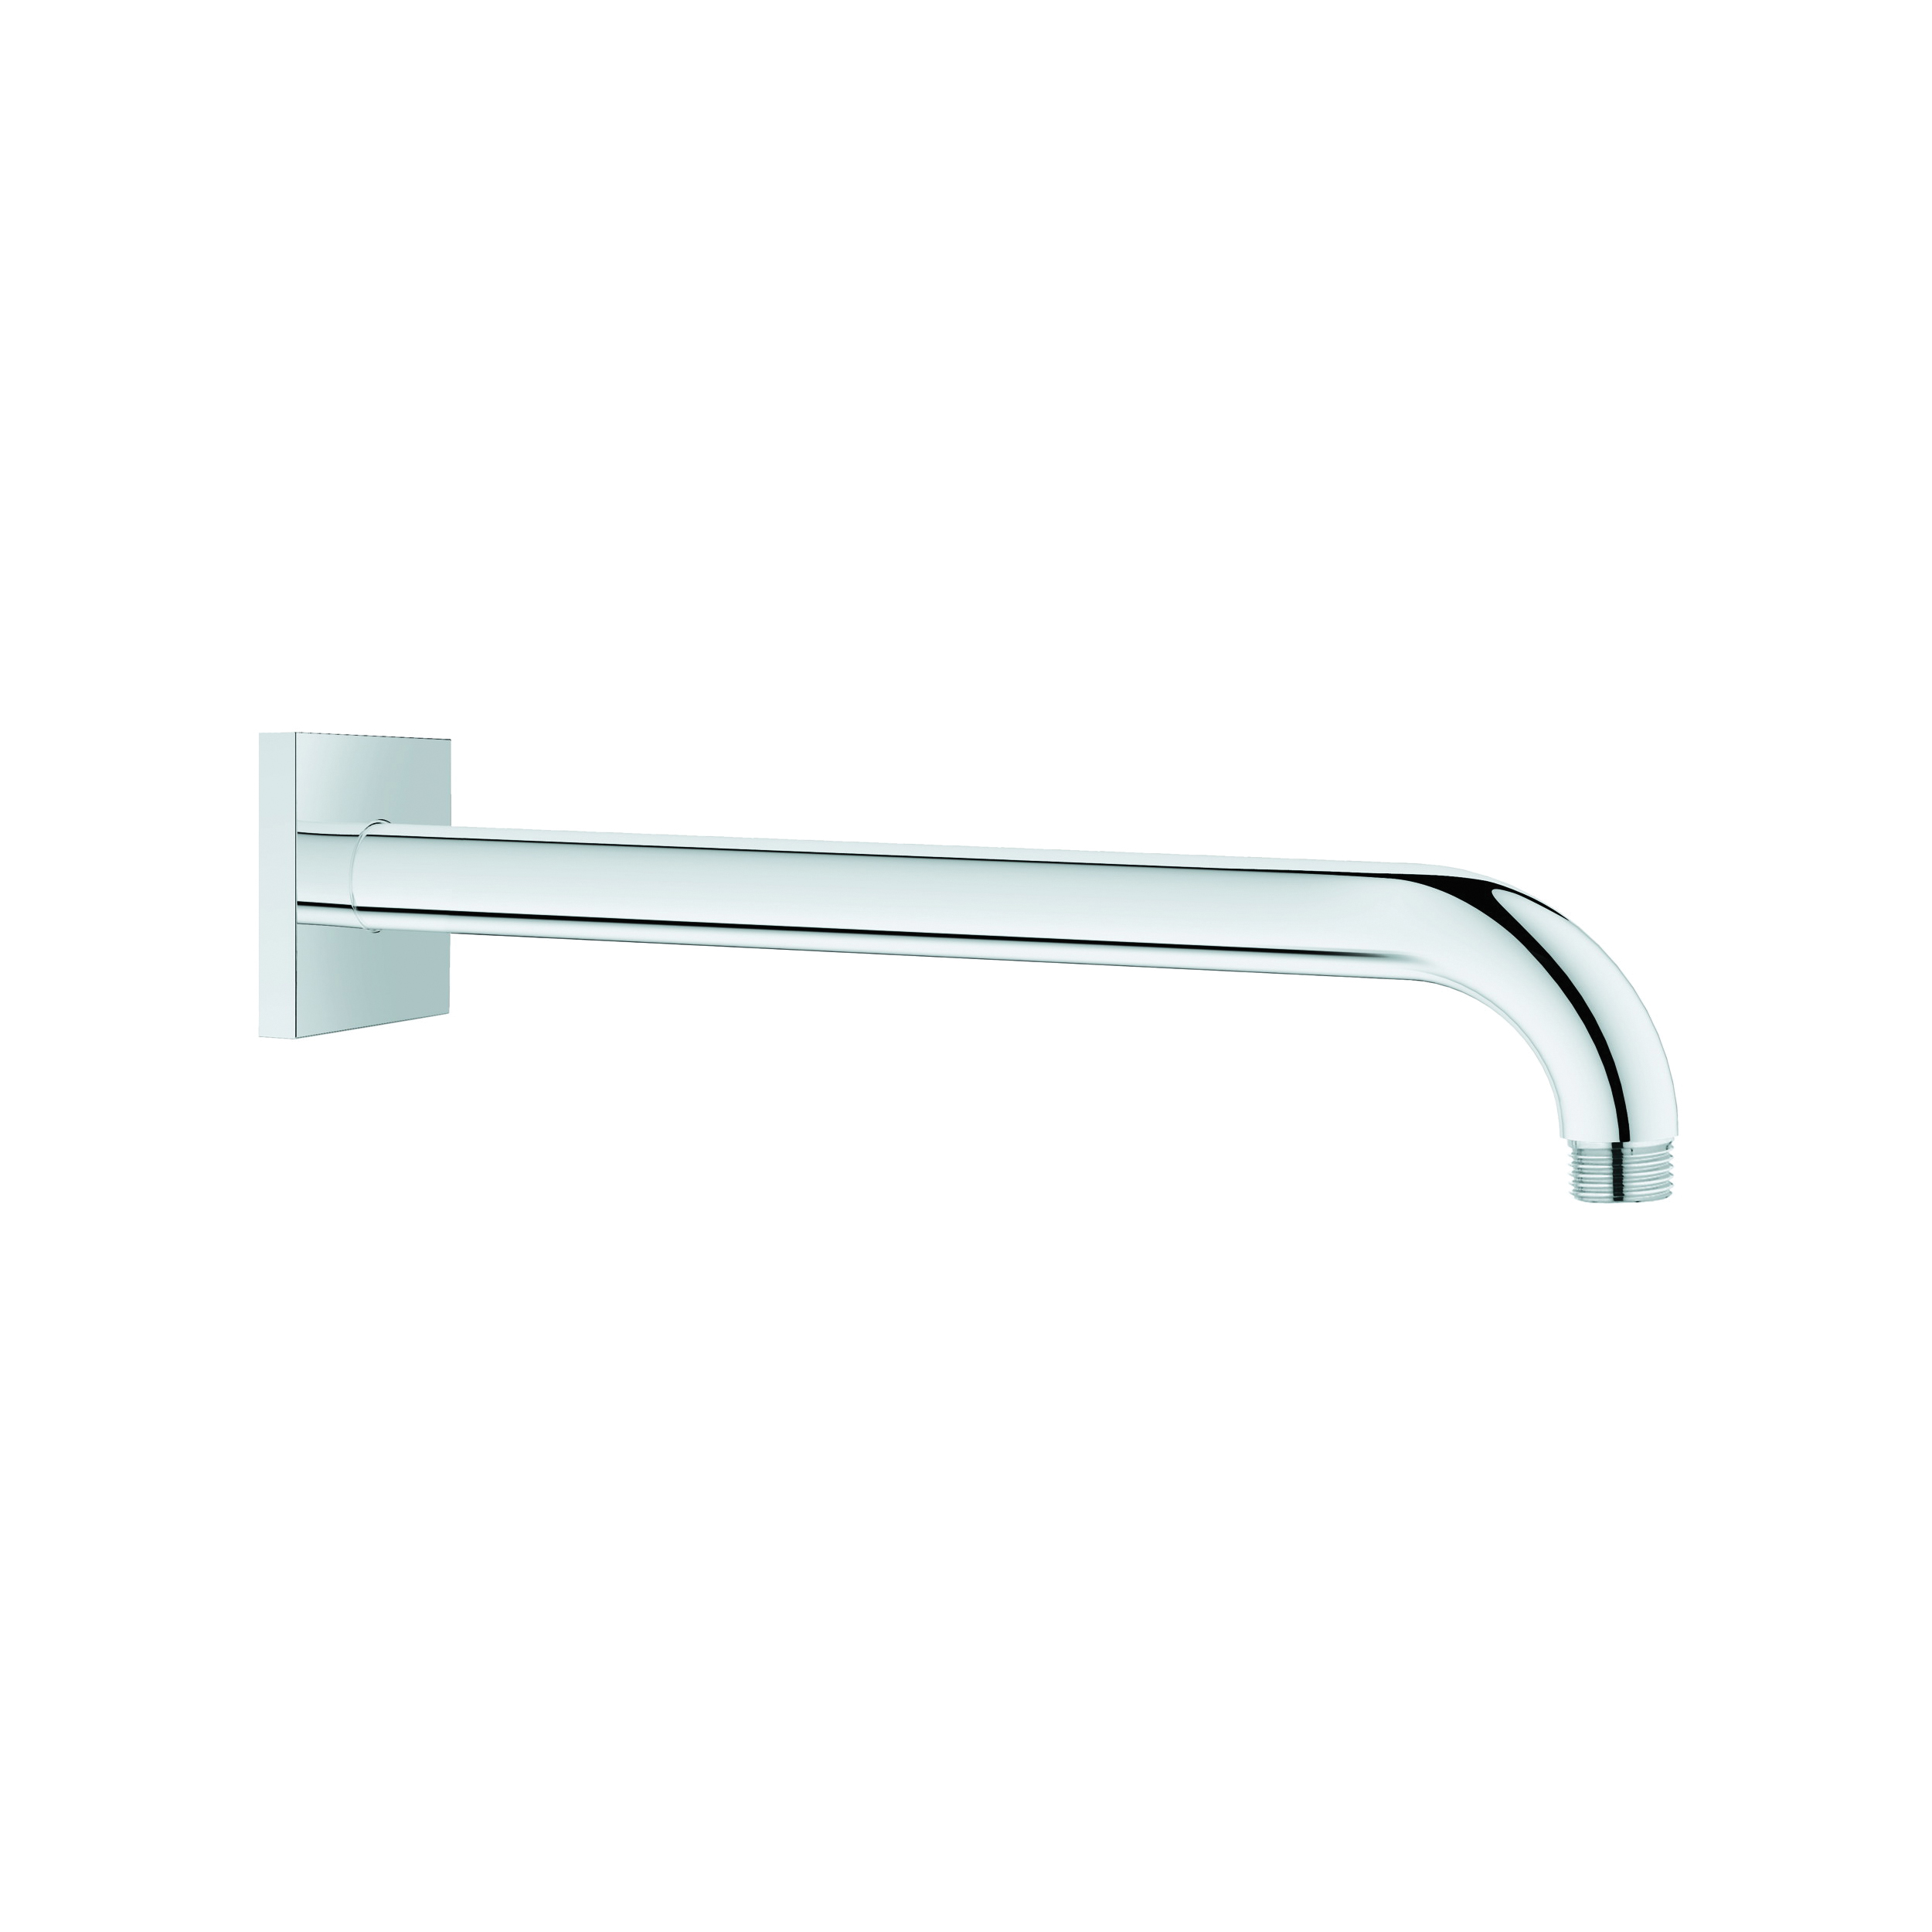 GROHE 27489000 Rainshower® Shower Arm With Square Flange, 10-13/16 in L, 1/2 in NPT, Import